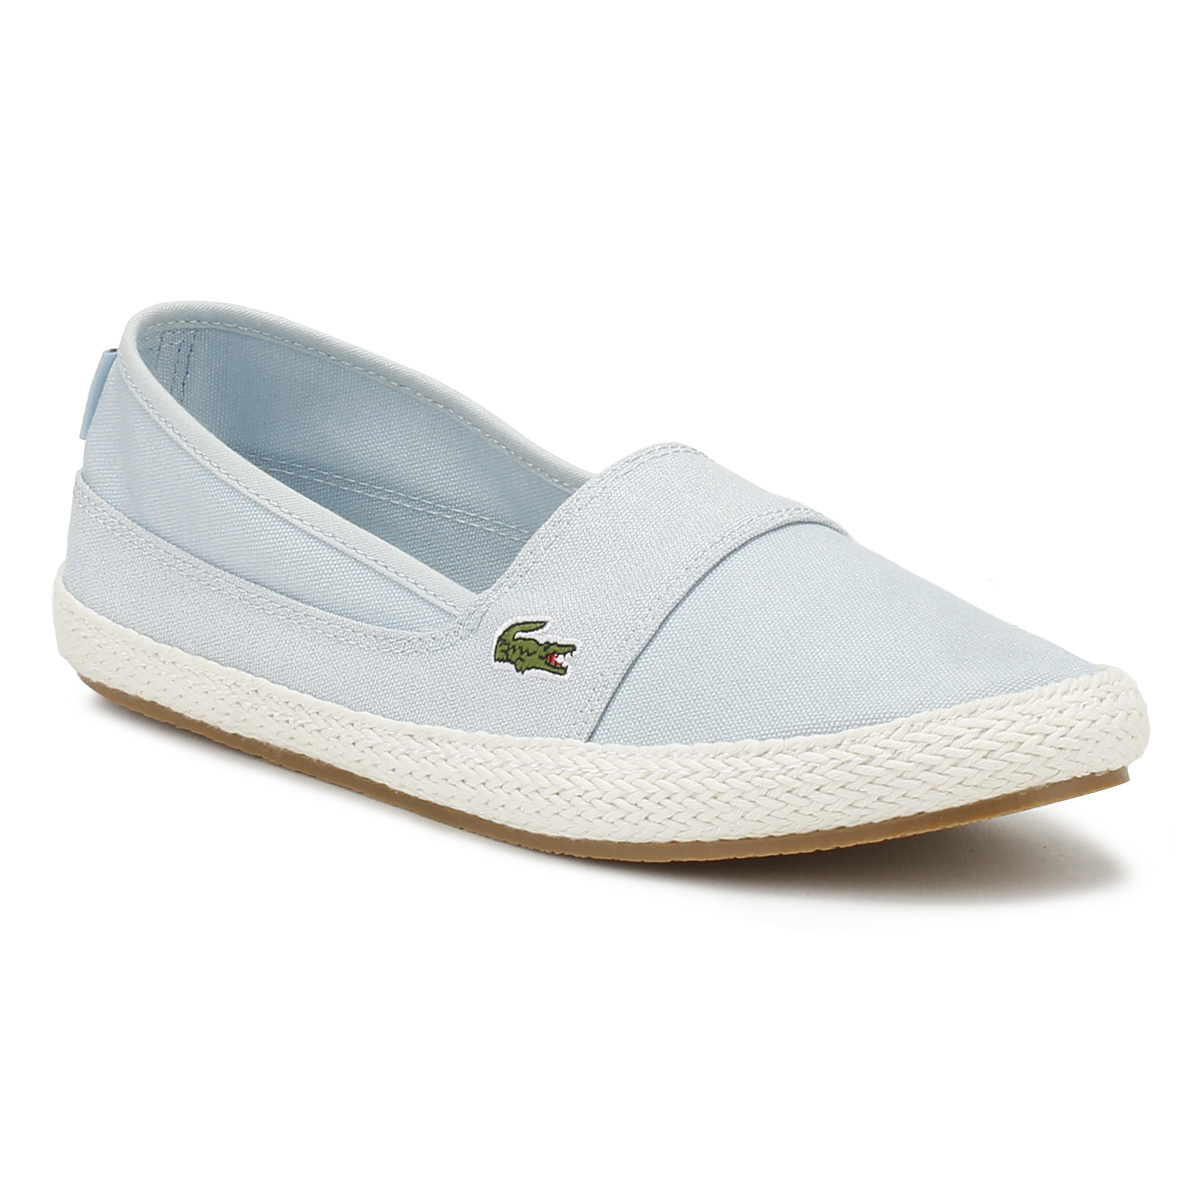 c6ebe59af39 Details about Lacoste Womens Flats Light Blue Marice 218 1 Espadrilles Slip  On Casual Shoes